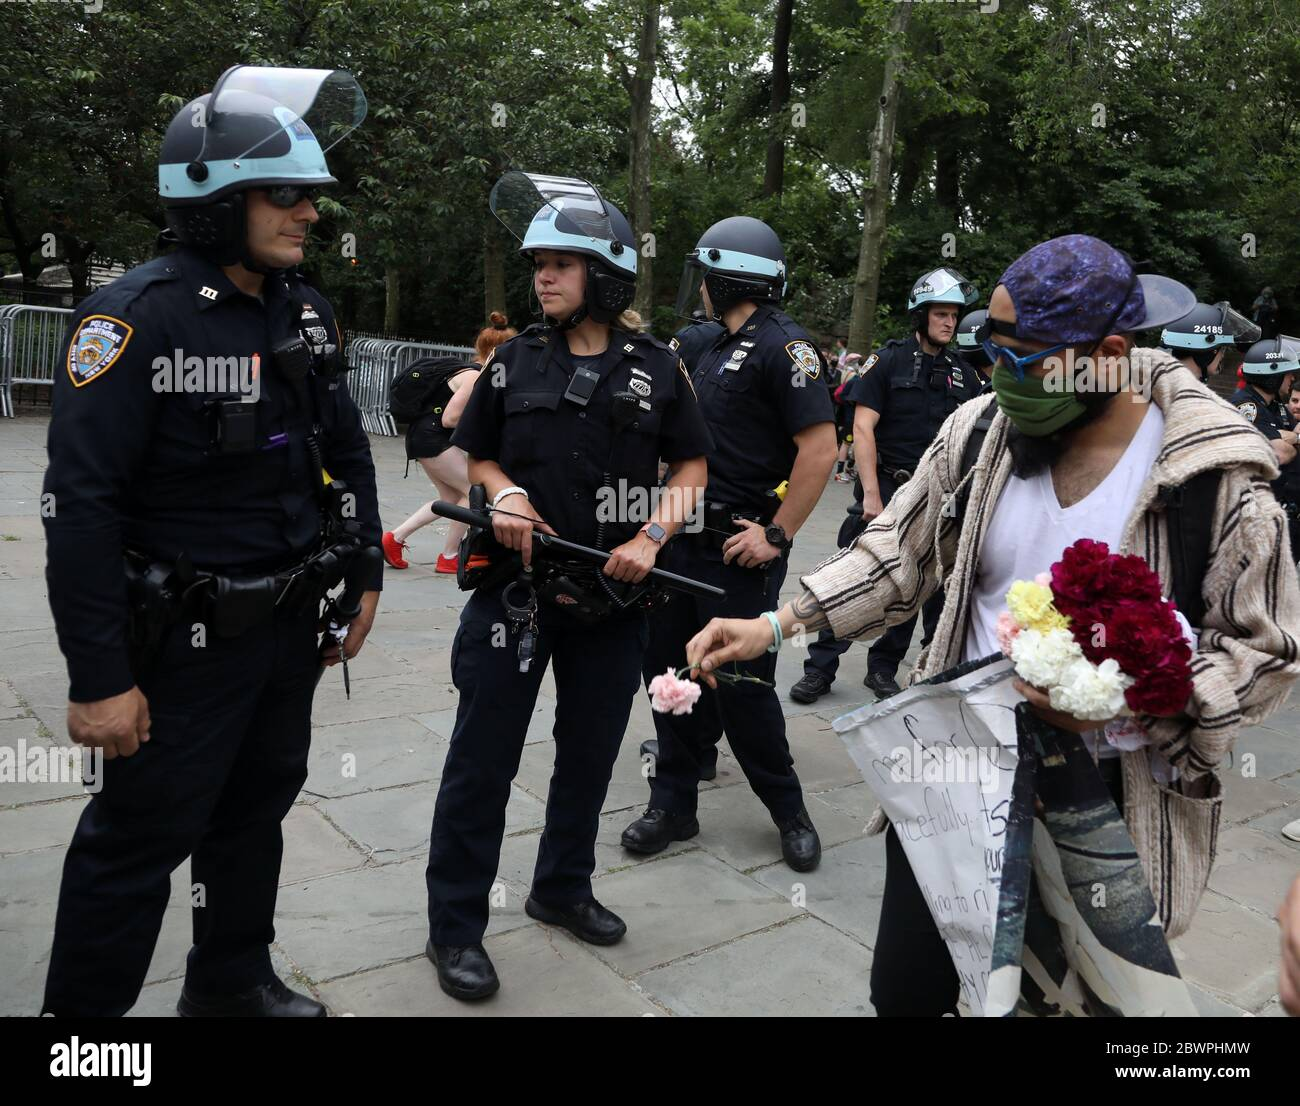 A photo of the arrest of a protesting woman who gave flowers to the US  military – صراط عشق